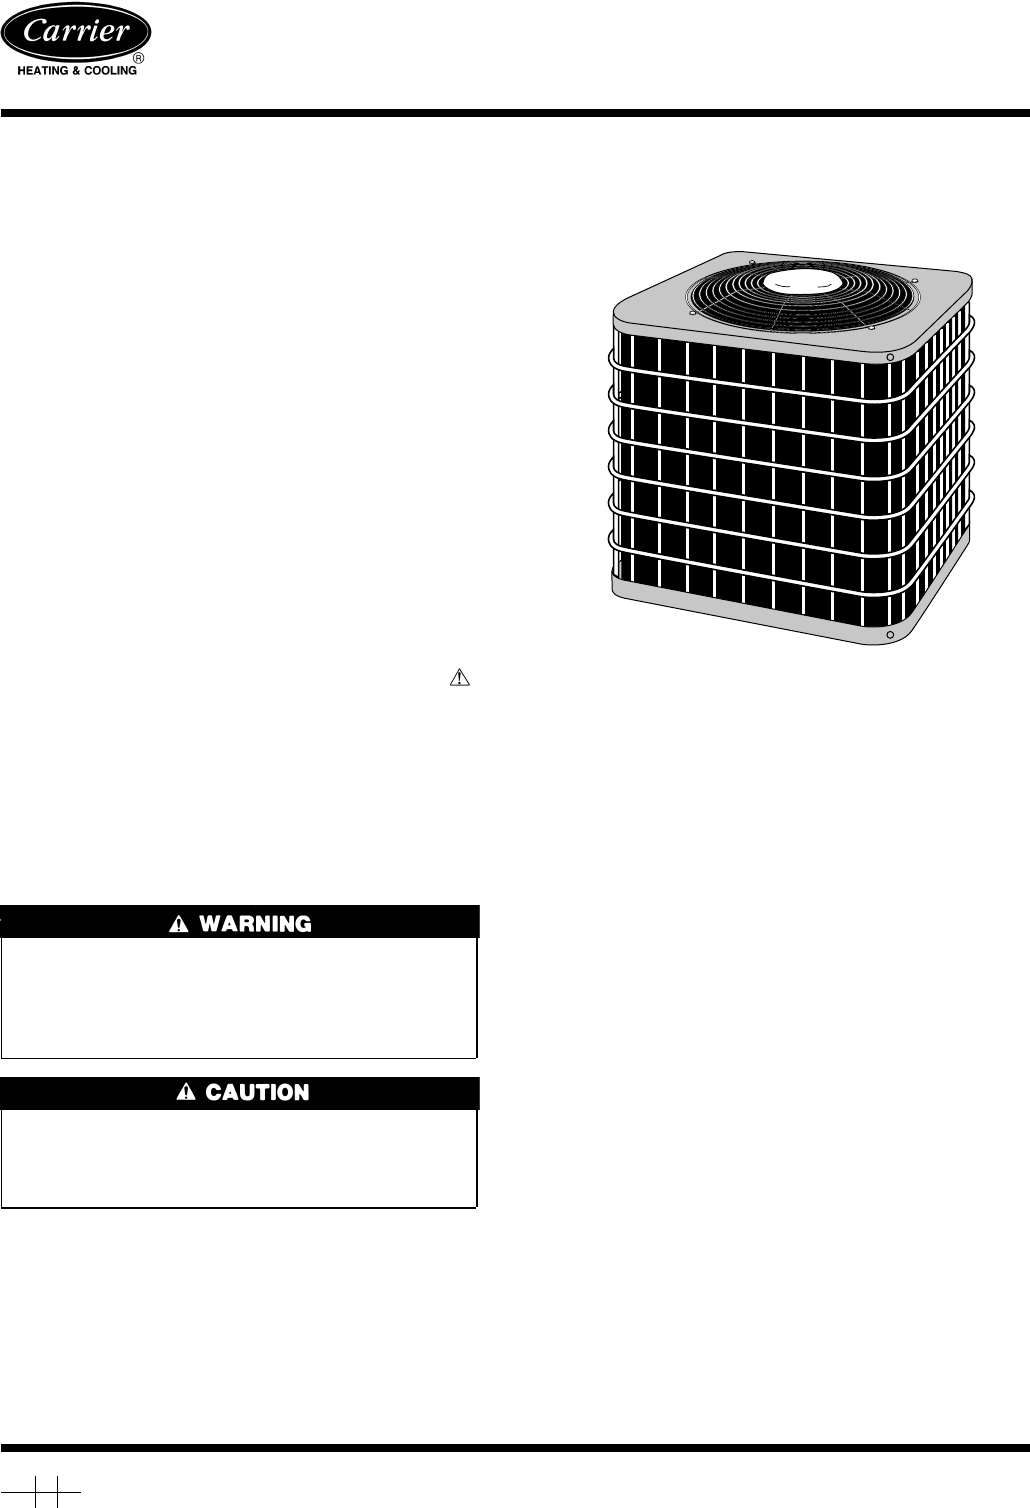 Instructions Manual For Heat Pump Carrier Up To Degrees C